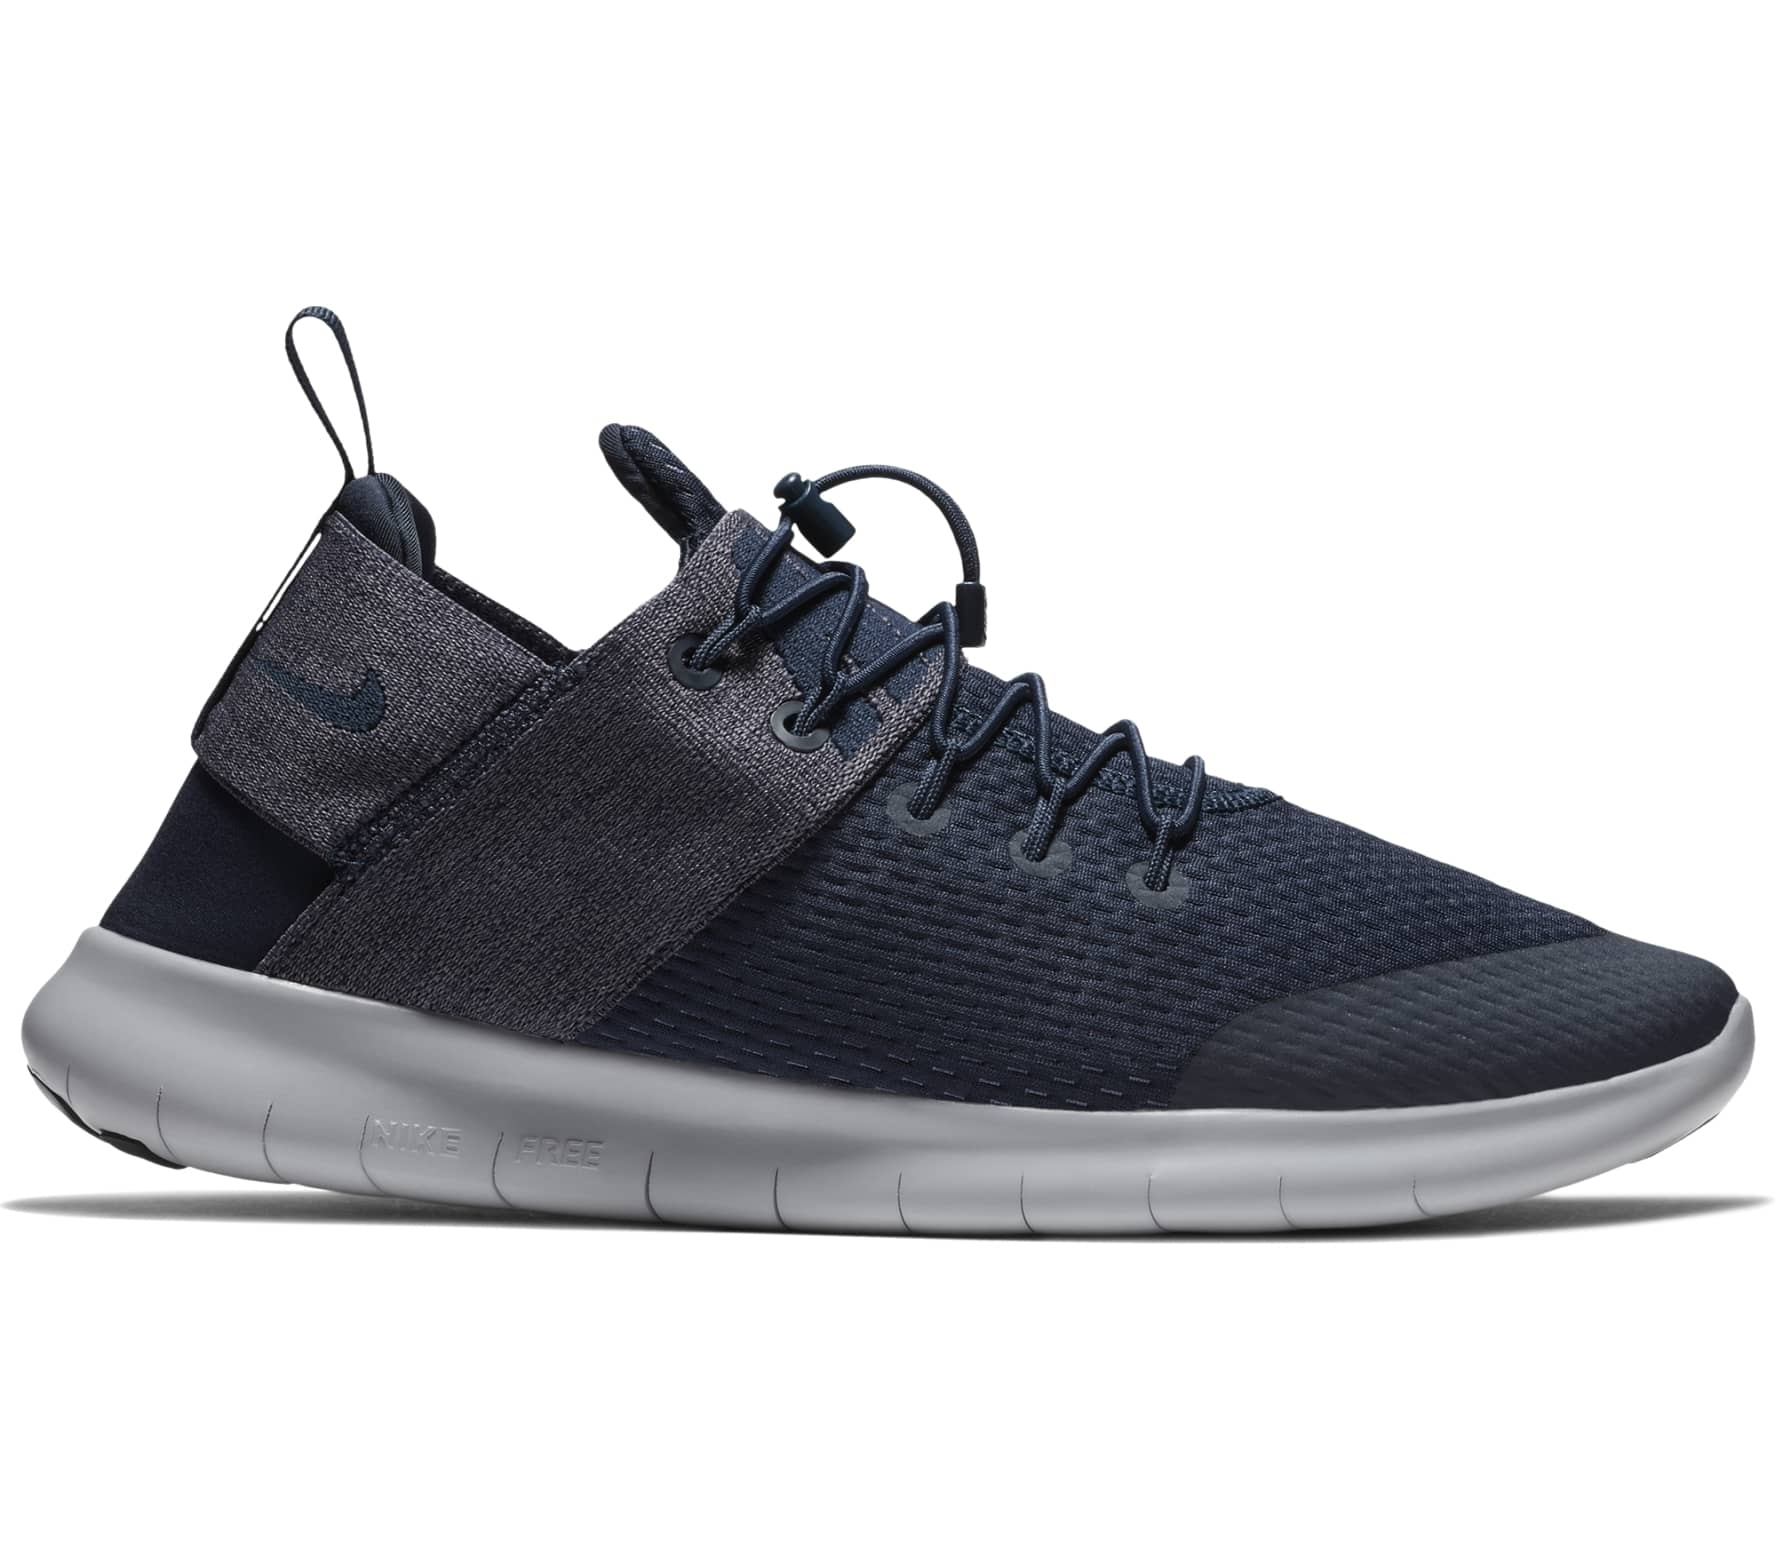 2769efb6ba168 Nike - Free RN Commuter 2017 men s running shoes (dark blue grey ...